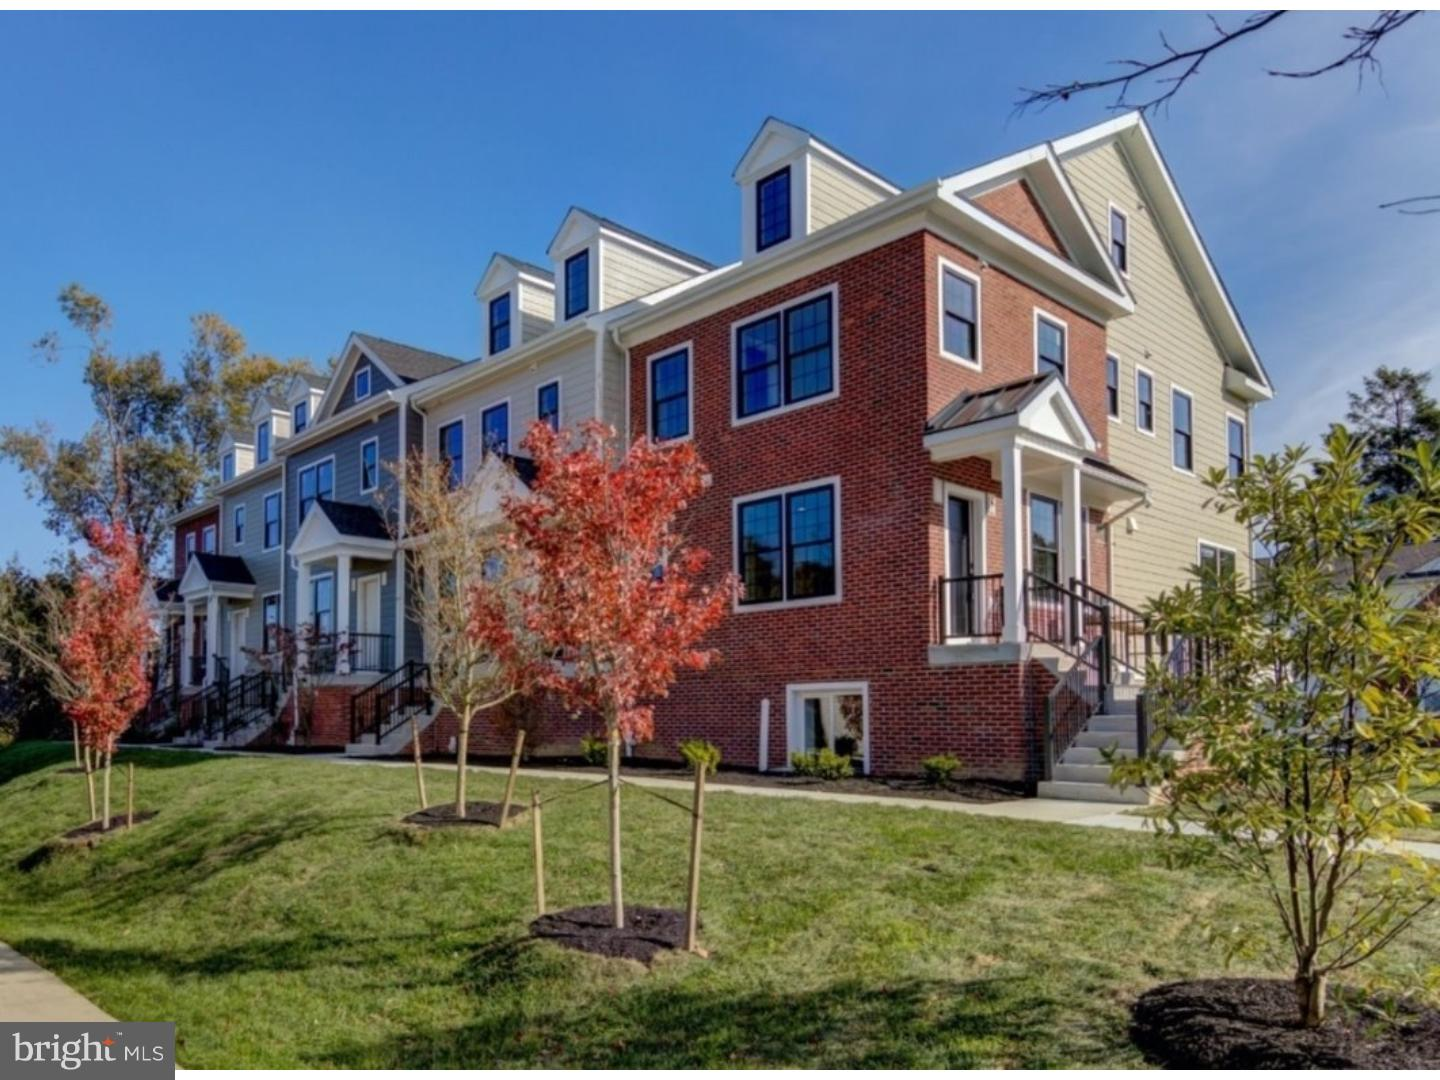 301 S VALLEY FORGE ROAD UNIT 5, DEVON, PA 19333